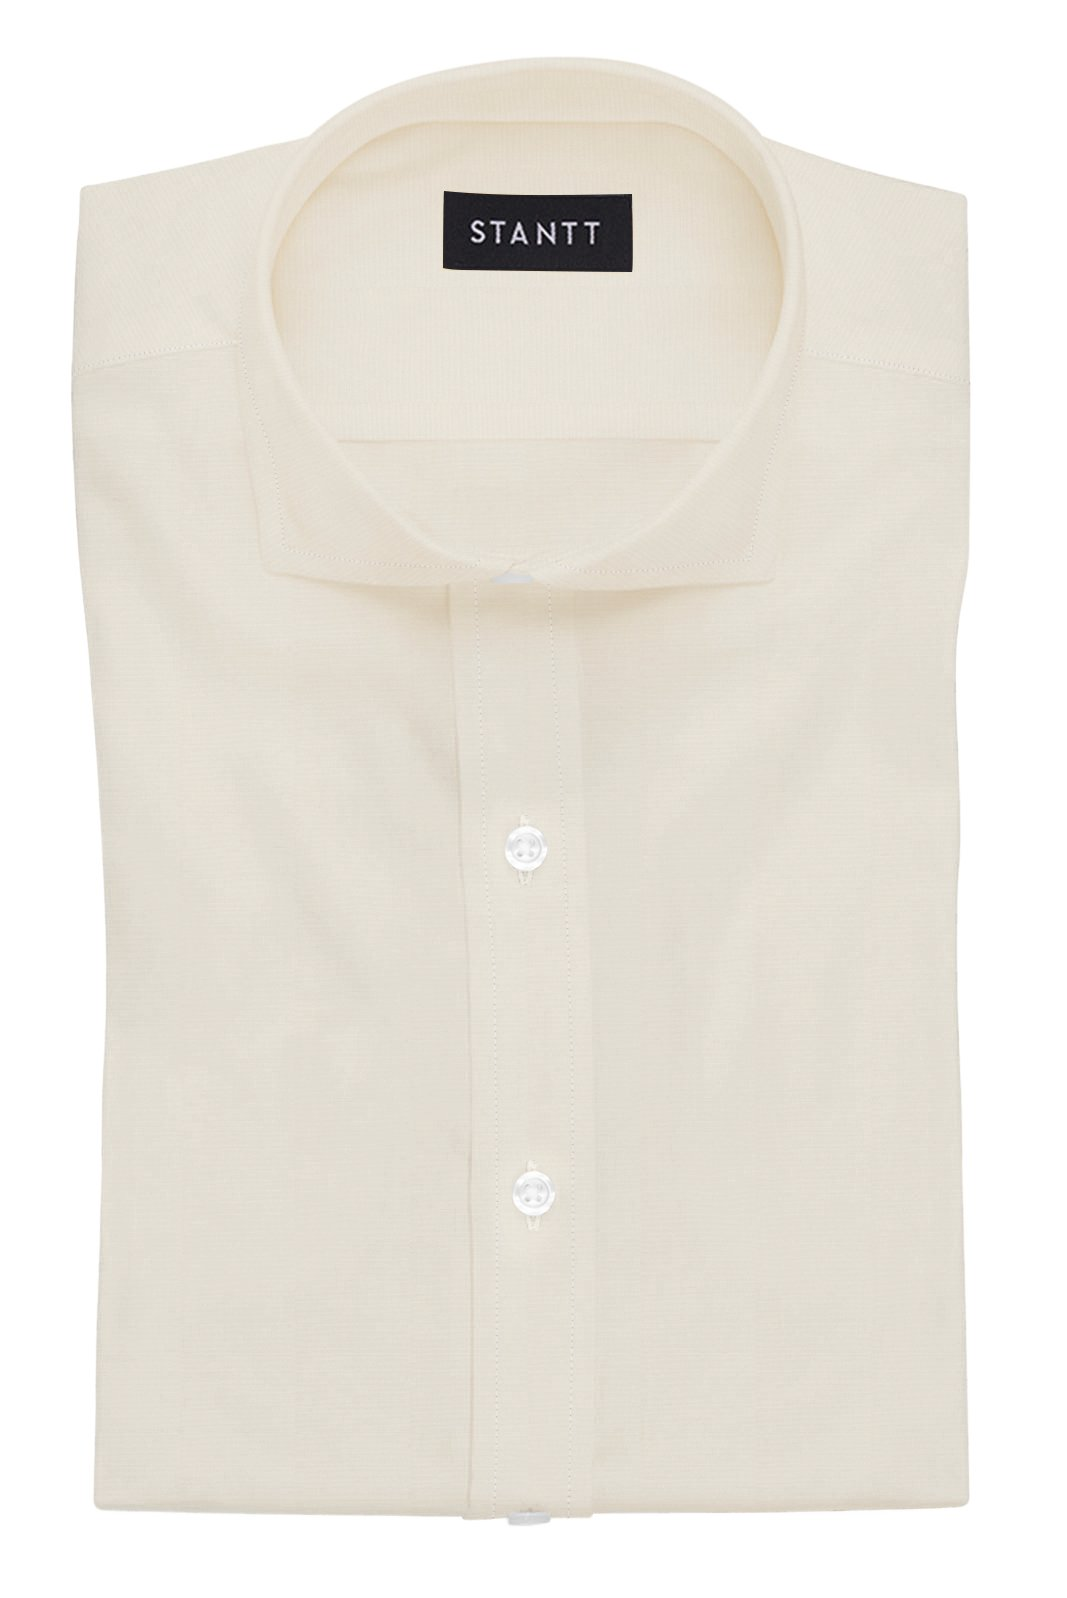 Ecru Poplin: Cutaway Collar, French Cuff